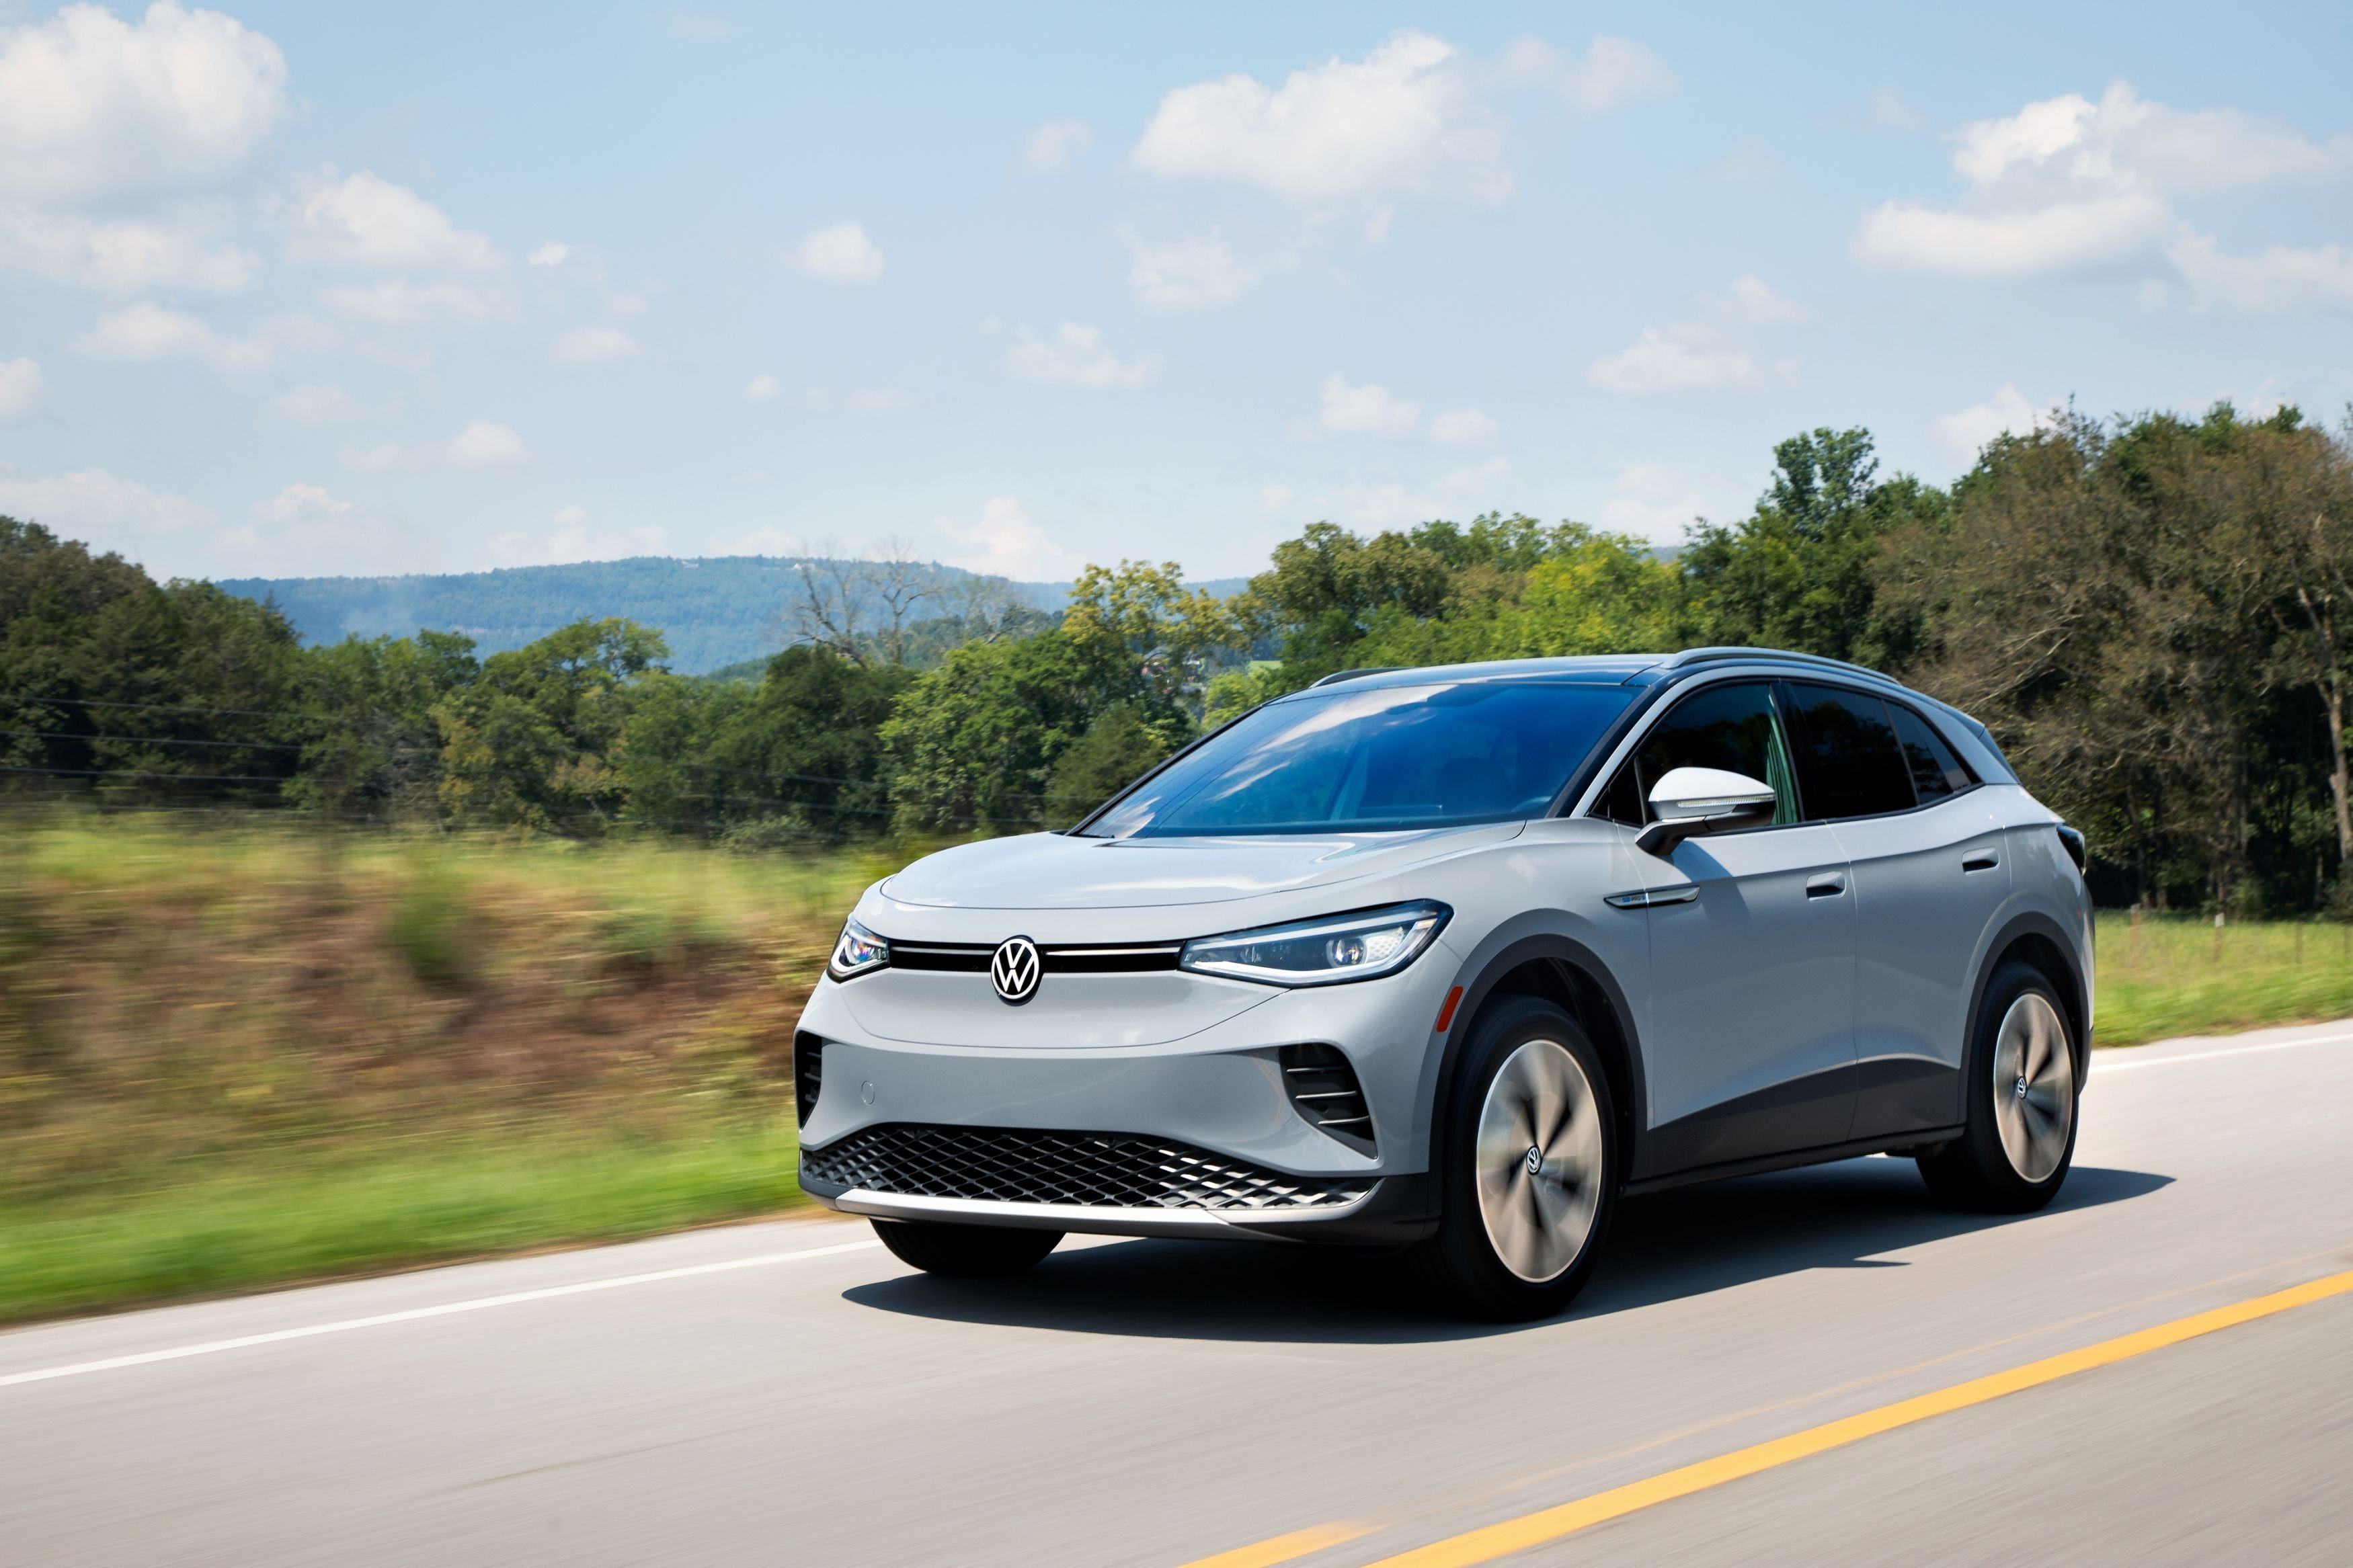 I'm Driving The Volkswagen ID.4 AWD, What Would You Like To Know?